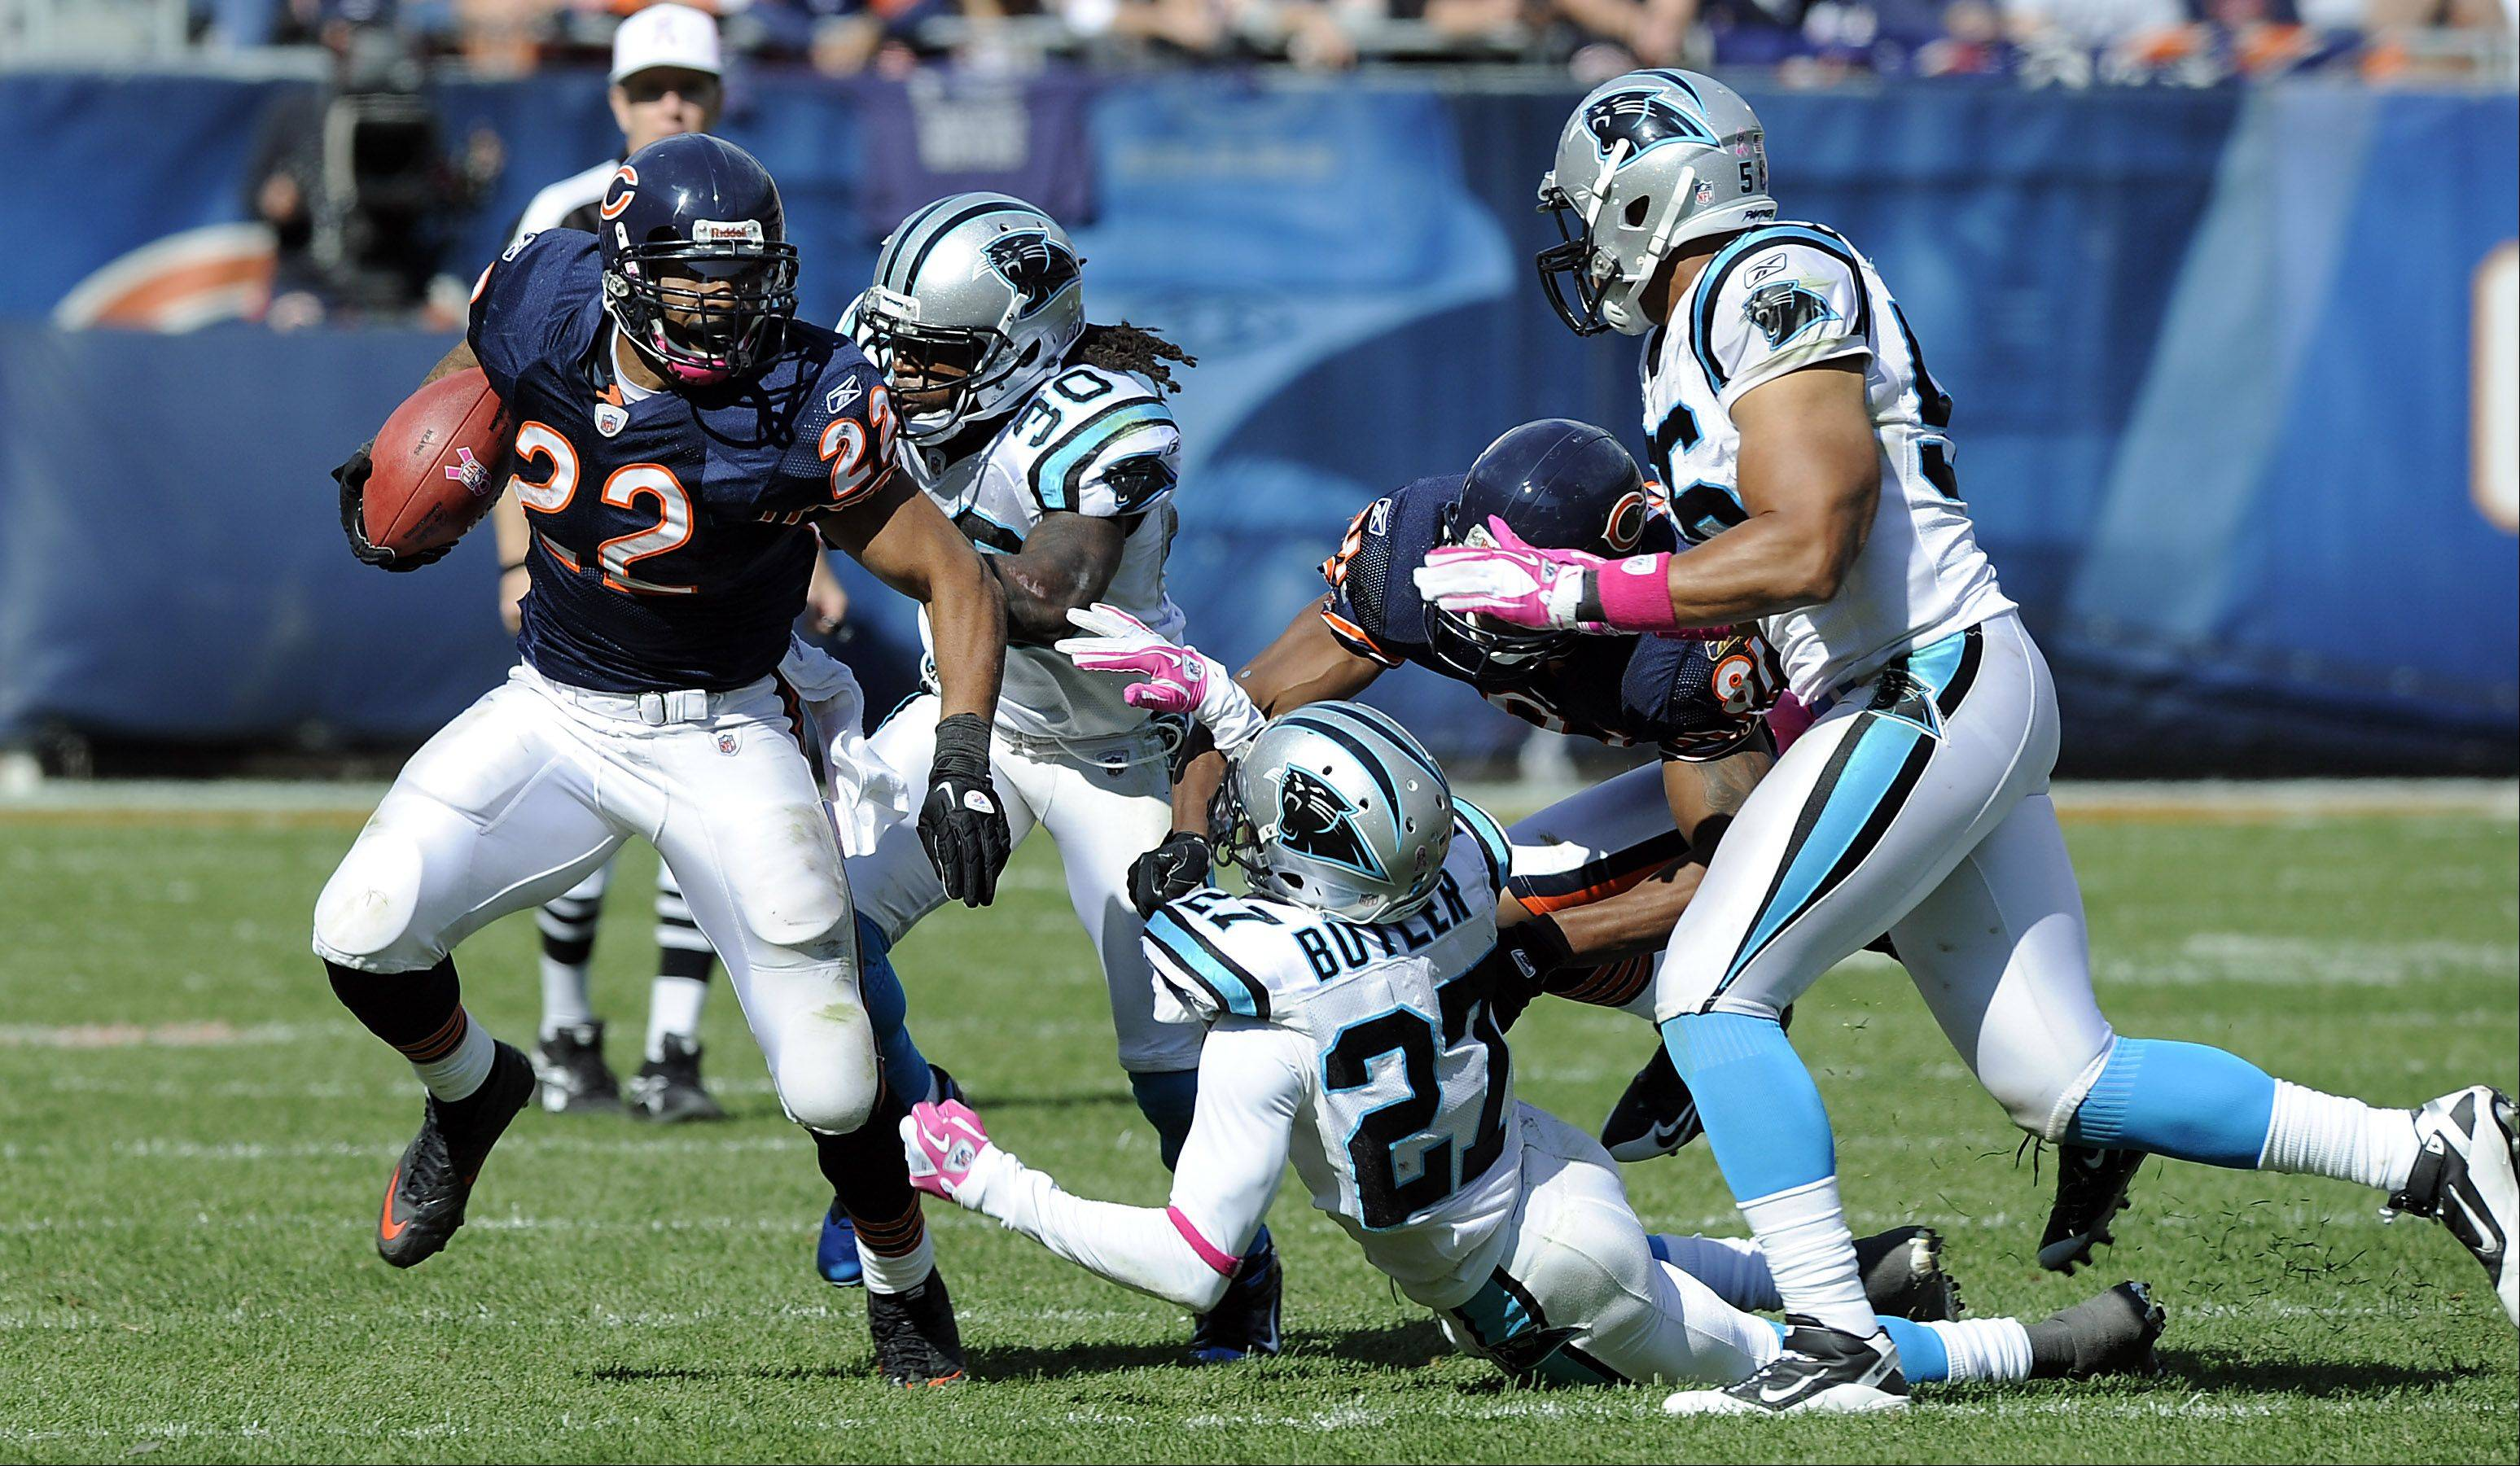 Bears running back Matt Forte rushed for 205 yards in Sunday's victory over Carolina.